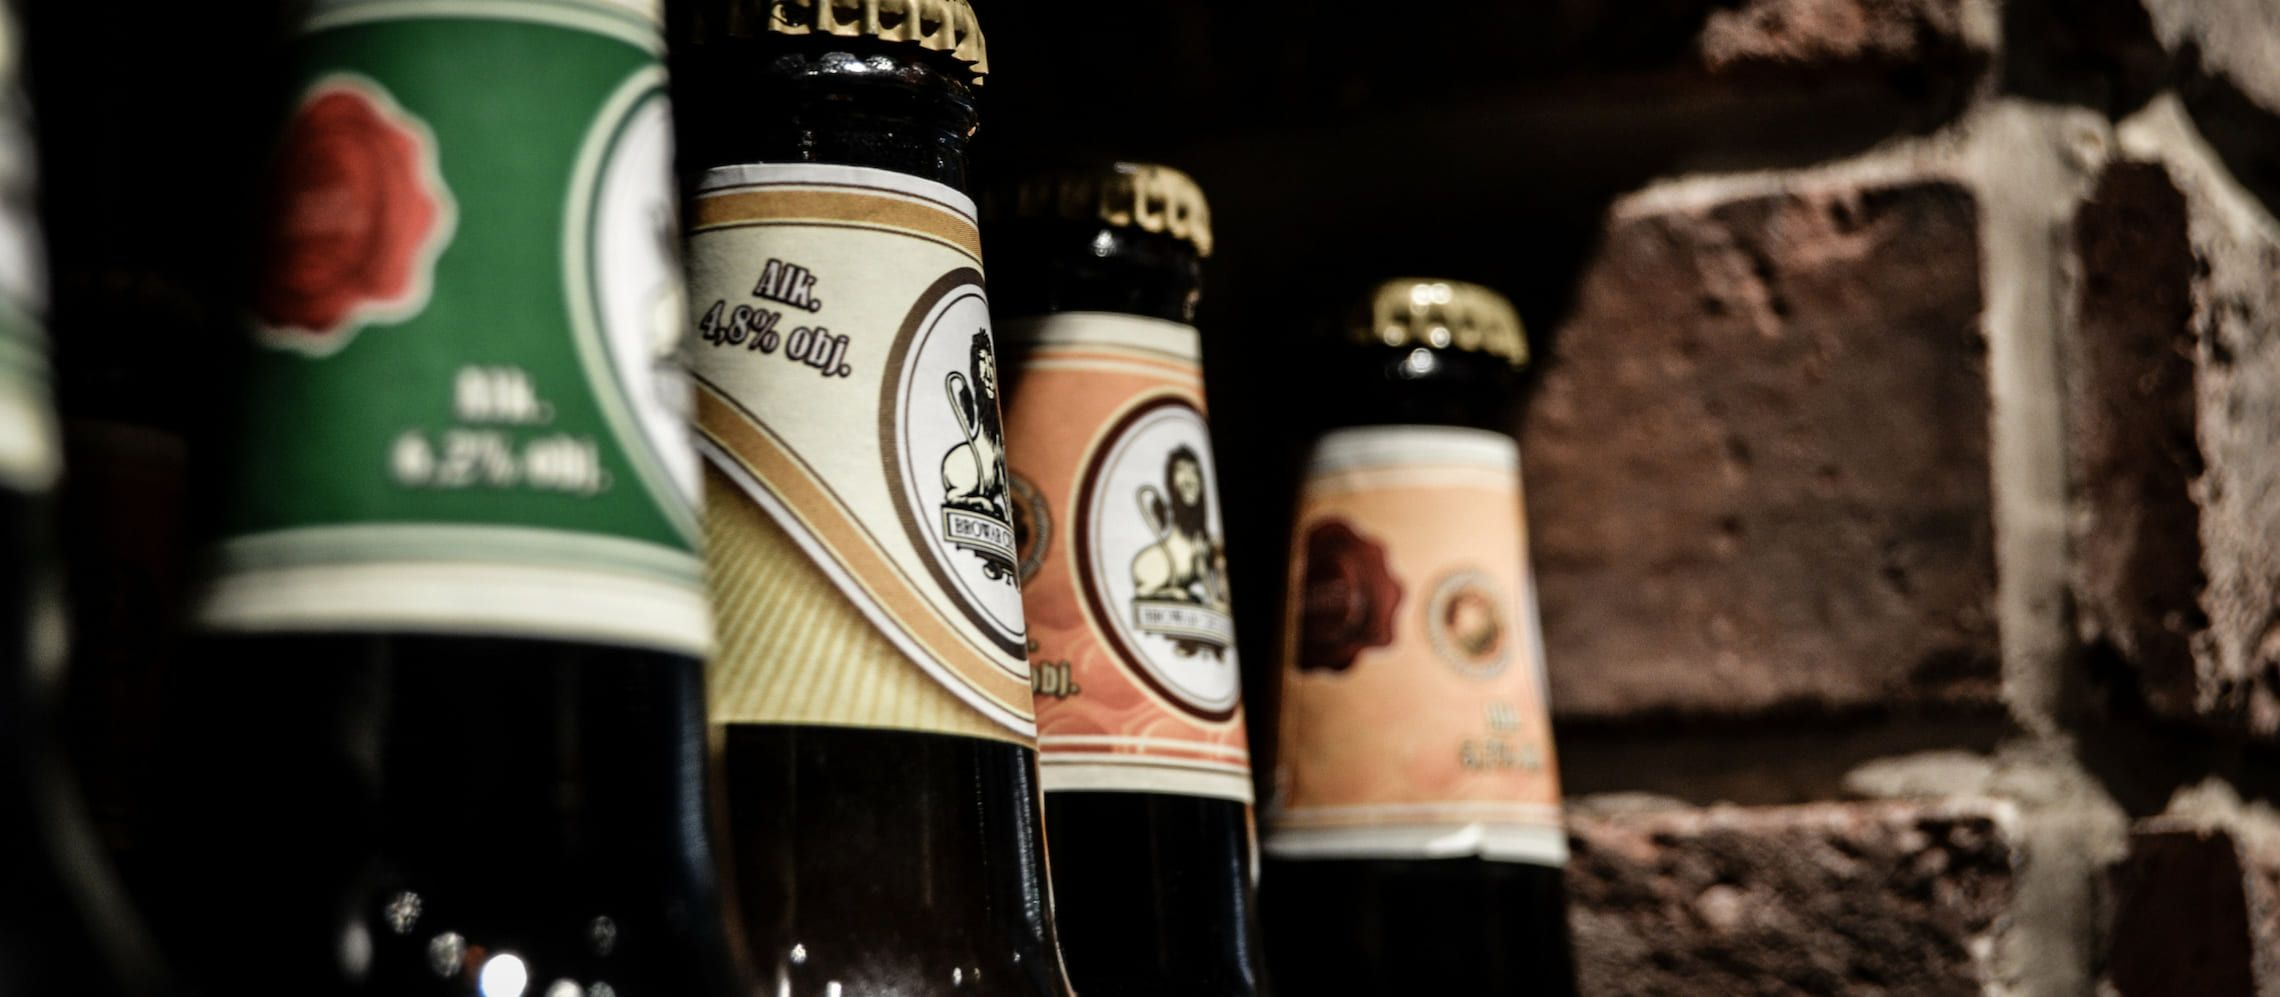 Photo for: The Proper Way to Cellar Beer